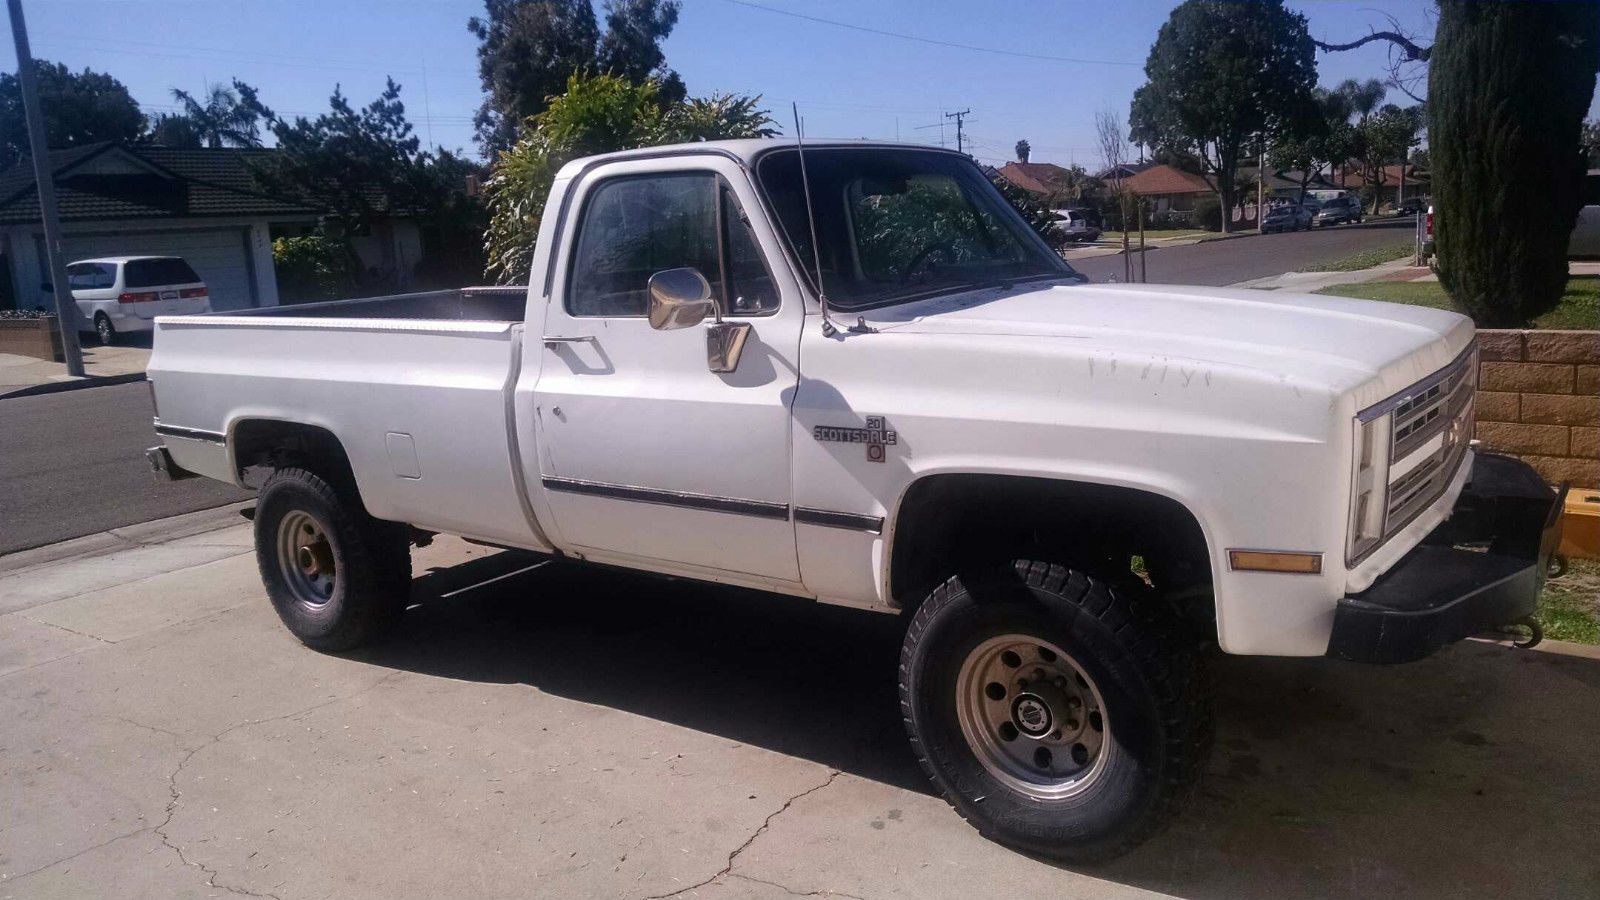 1986 chevy k20 383 stroker 4x4 for sale in buena park california united states. Black Bedroom Furniture Sets. Home Design Ideas